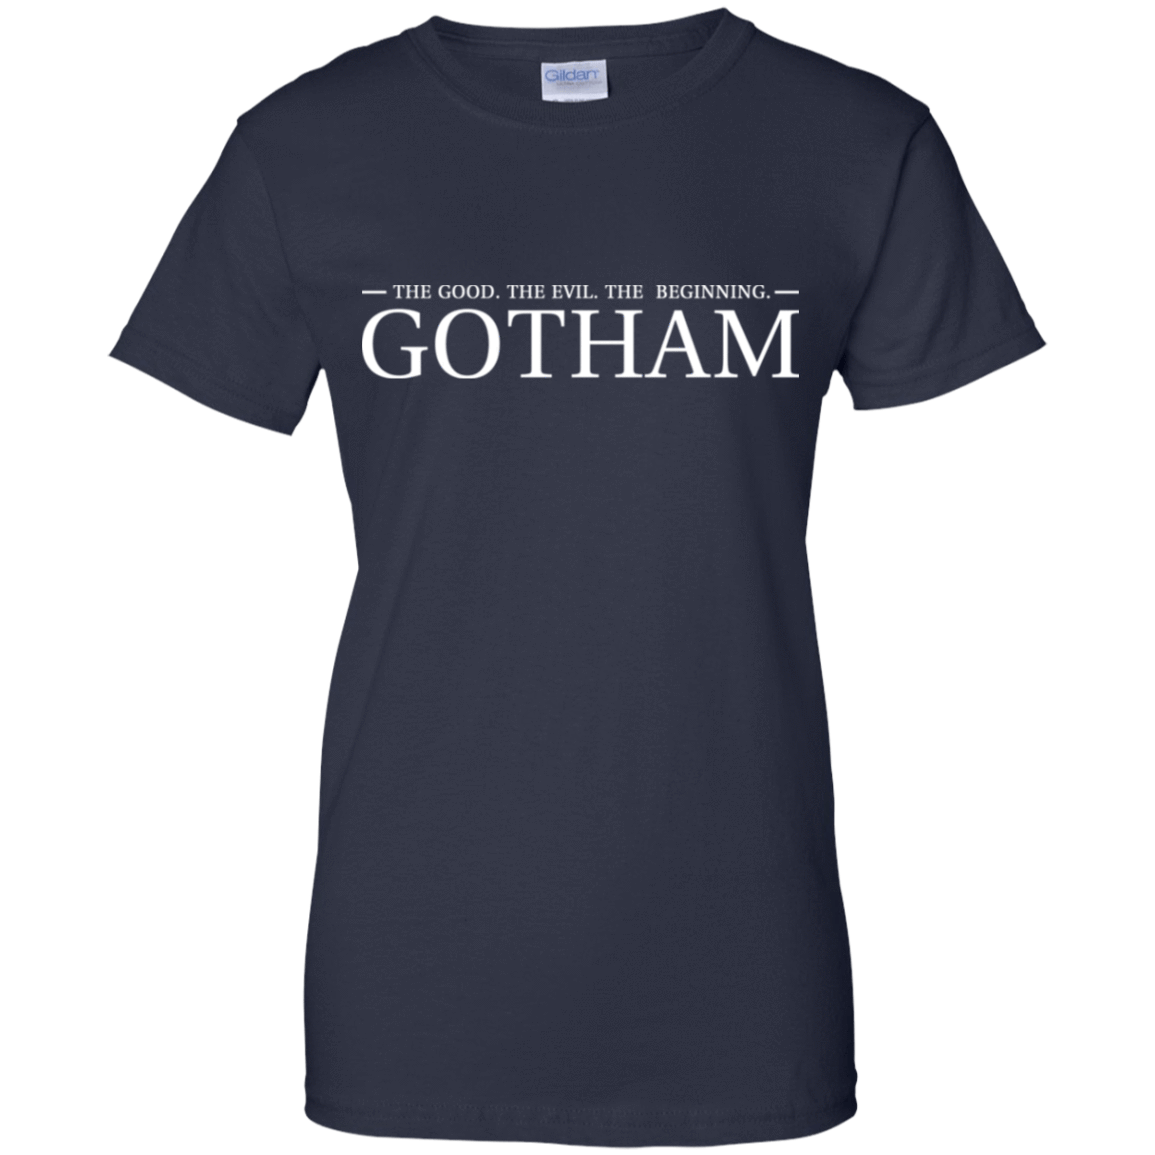 The Good. The Evil. The Beginning. Gotham 939-9259-74005253-44765 - Tee Ript